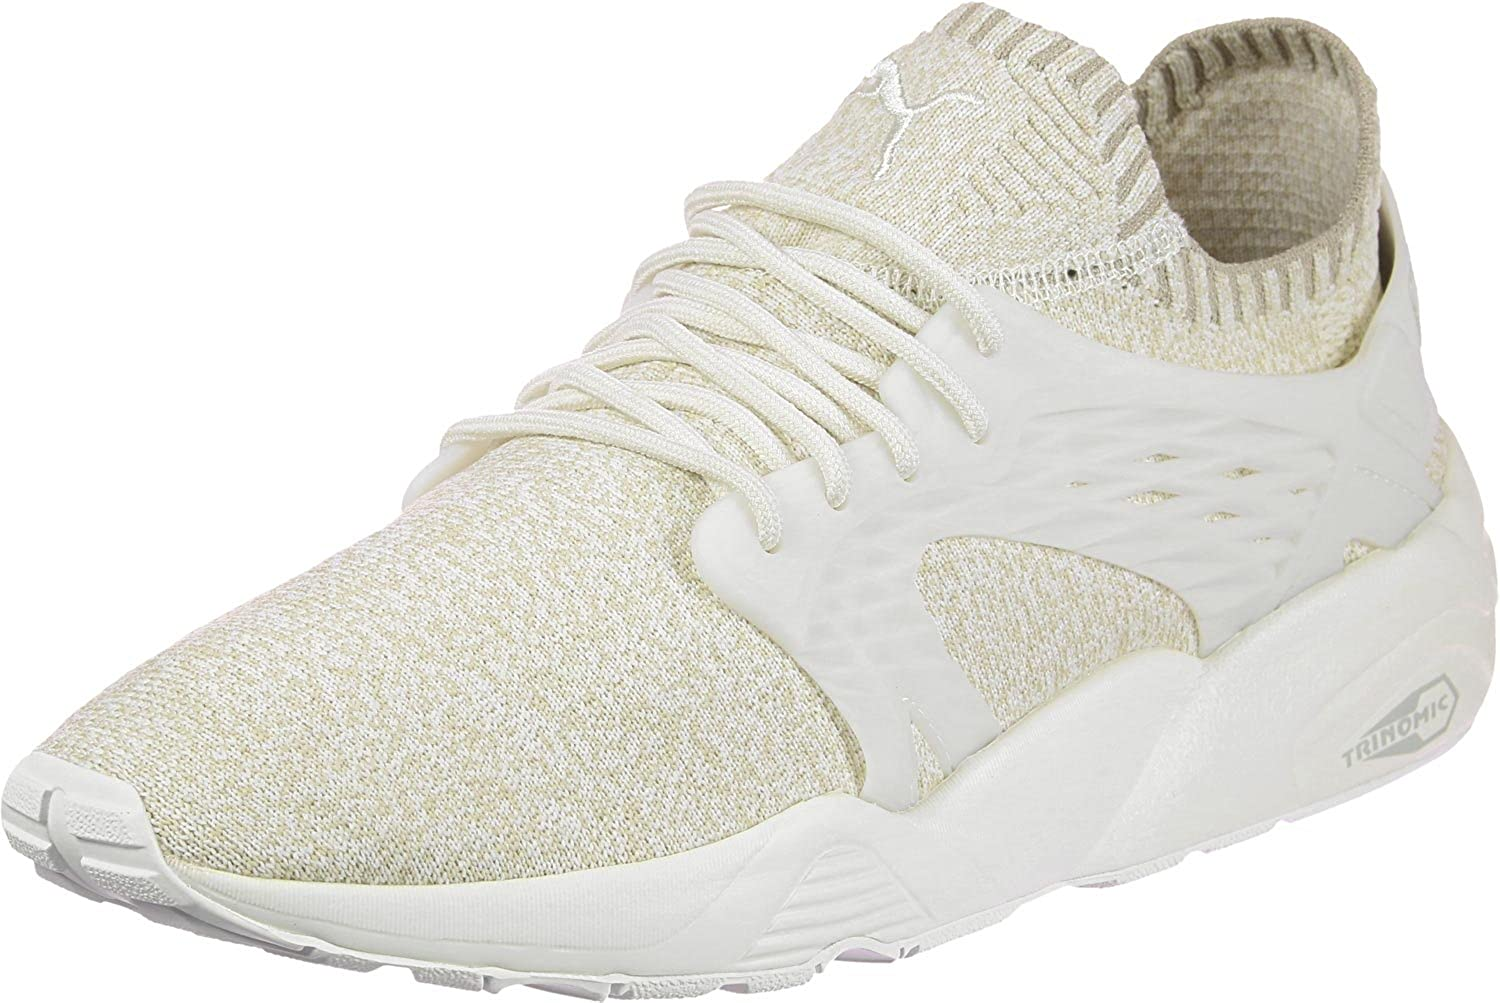 factory outlet presenting official shop well-wreapped baskets mode puma 364113 wns blaze cage knit ...